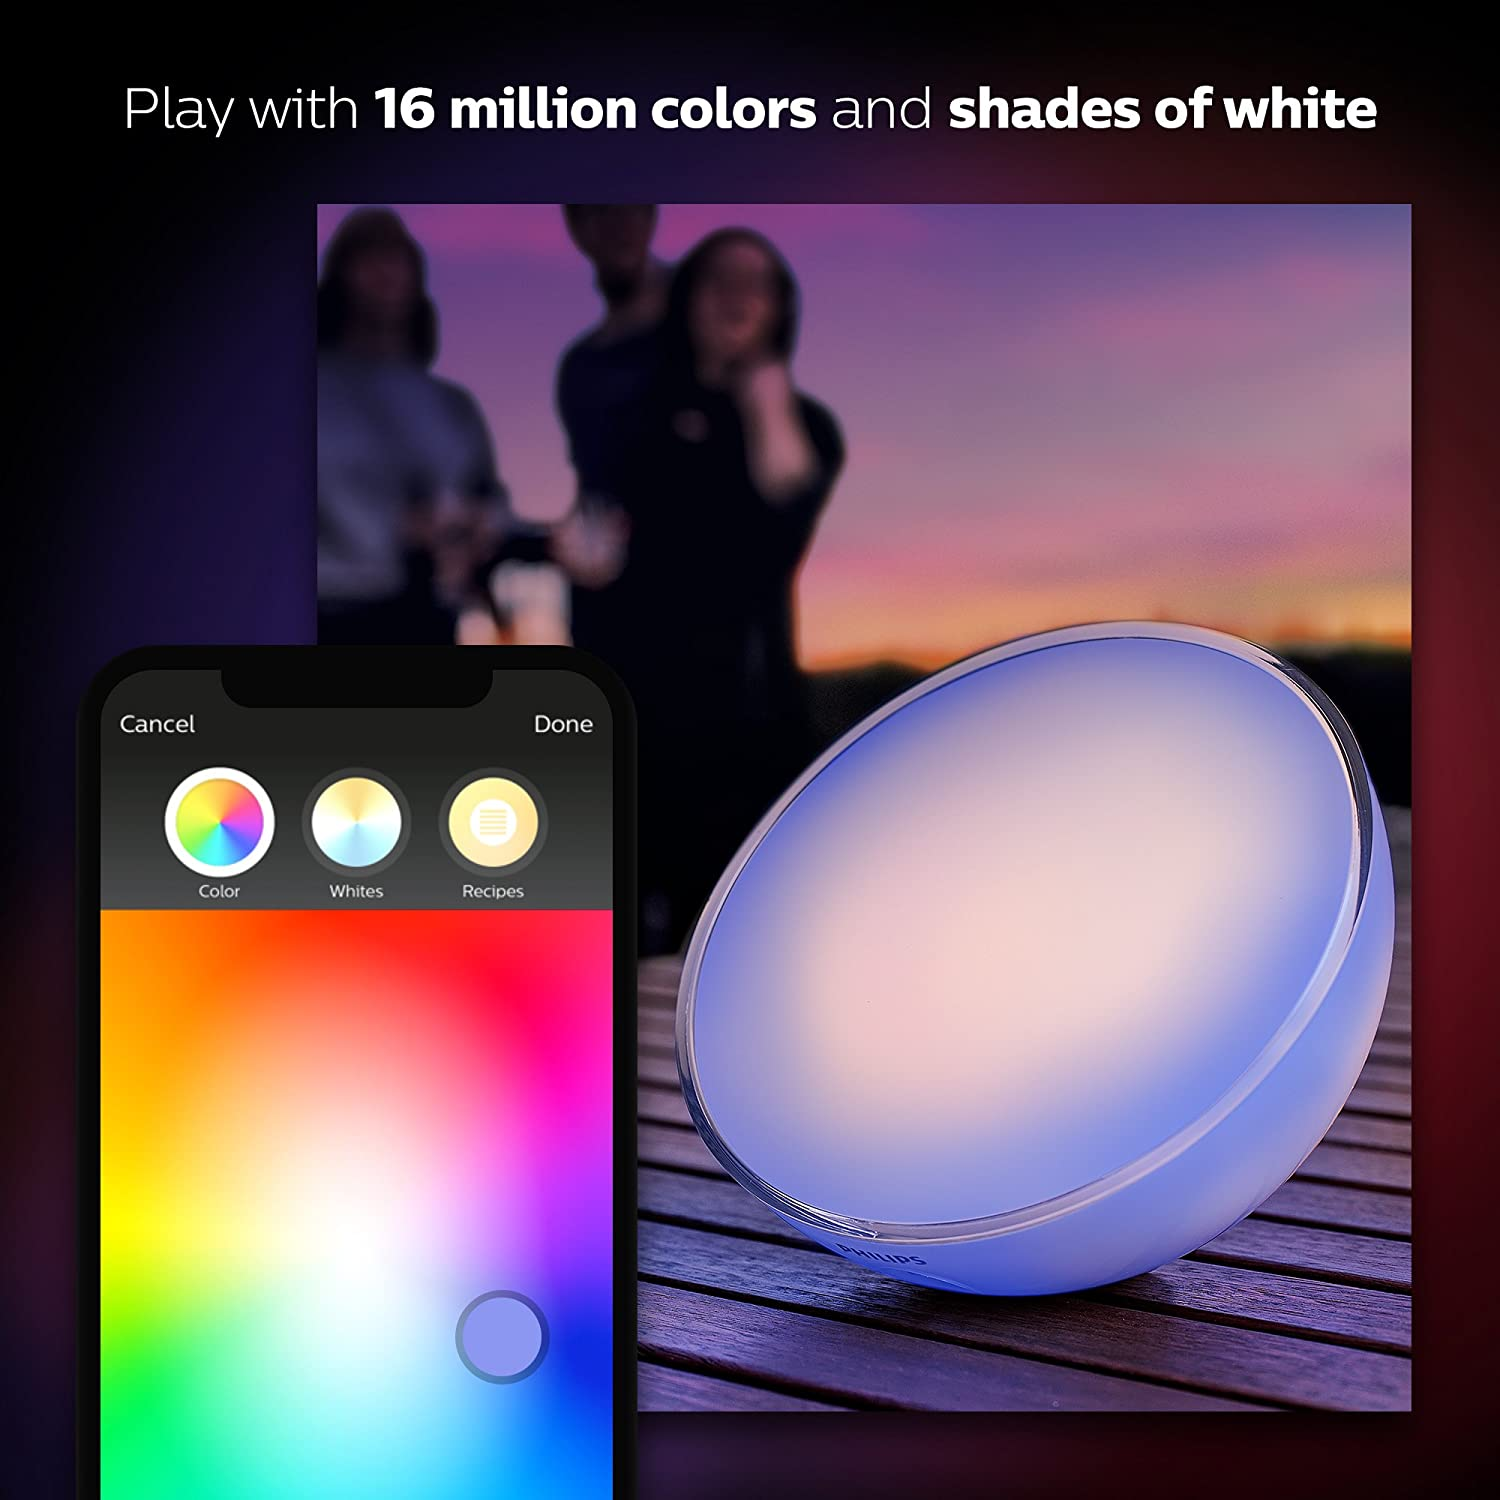 Philips Hue Go Portable Dimmable Led Smart Light Table Lamp Phillips 7 Pin Trailer Connector Wiring Diagram Compatible With Amazon Alexa Apple Homekit And Google Assistant Home